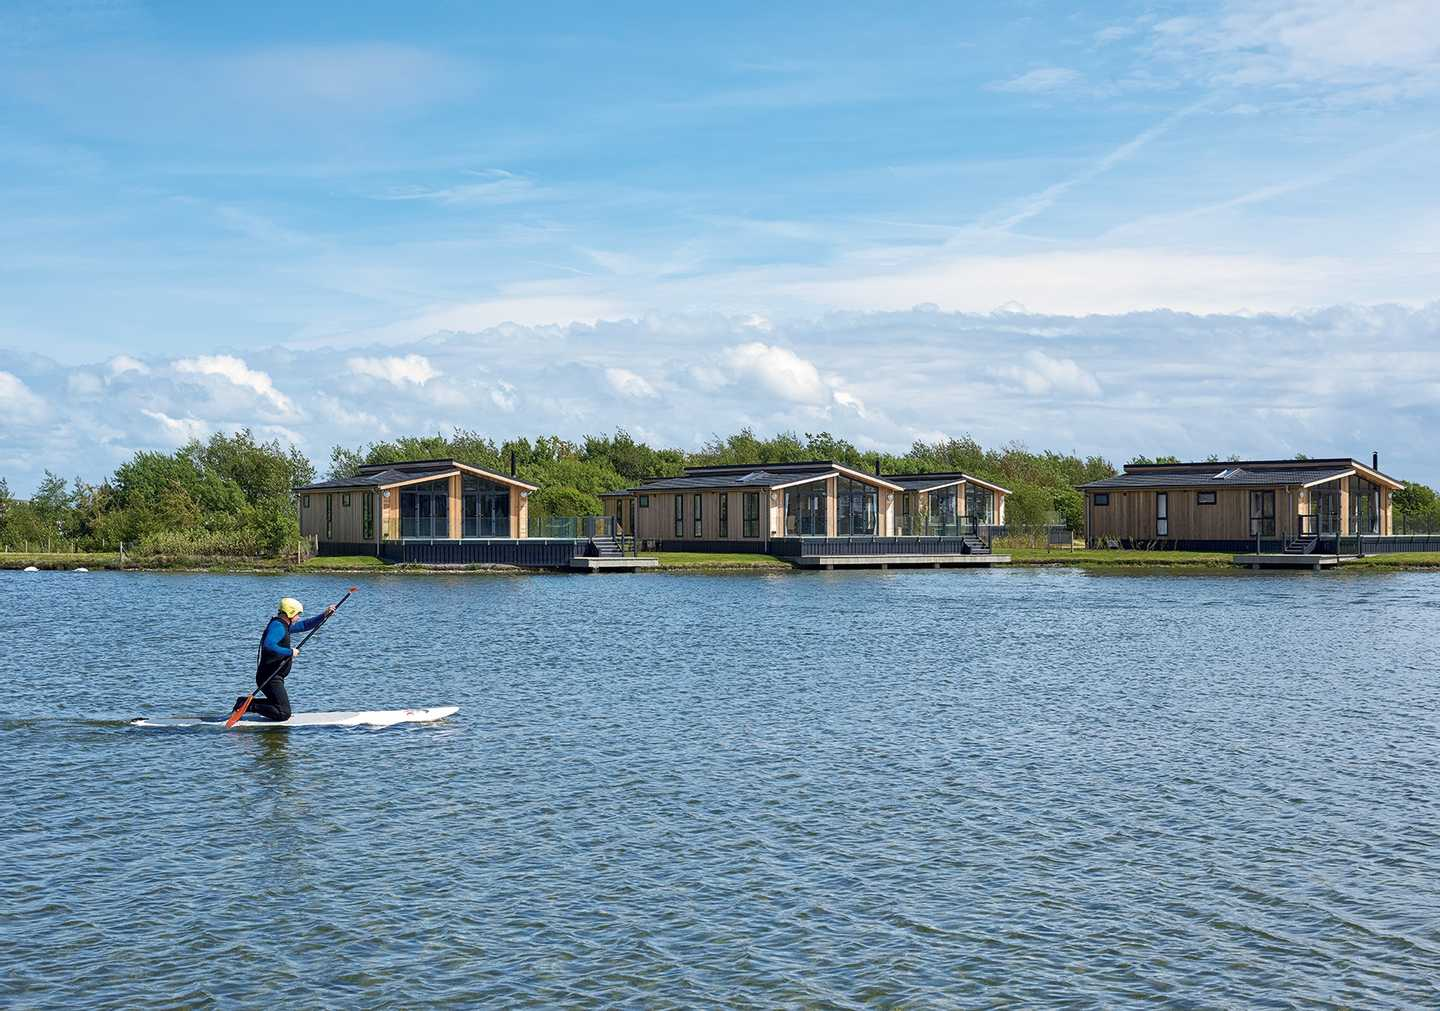 A guest paddleboarding on the lake at Lakeland